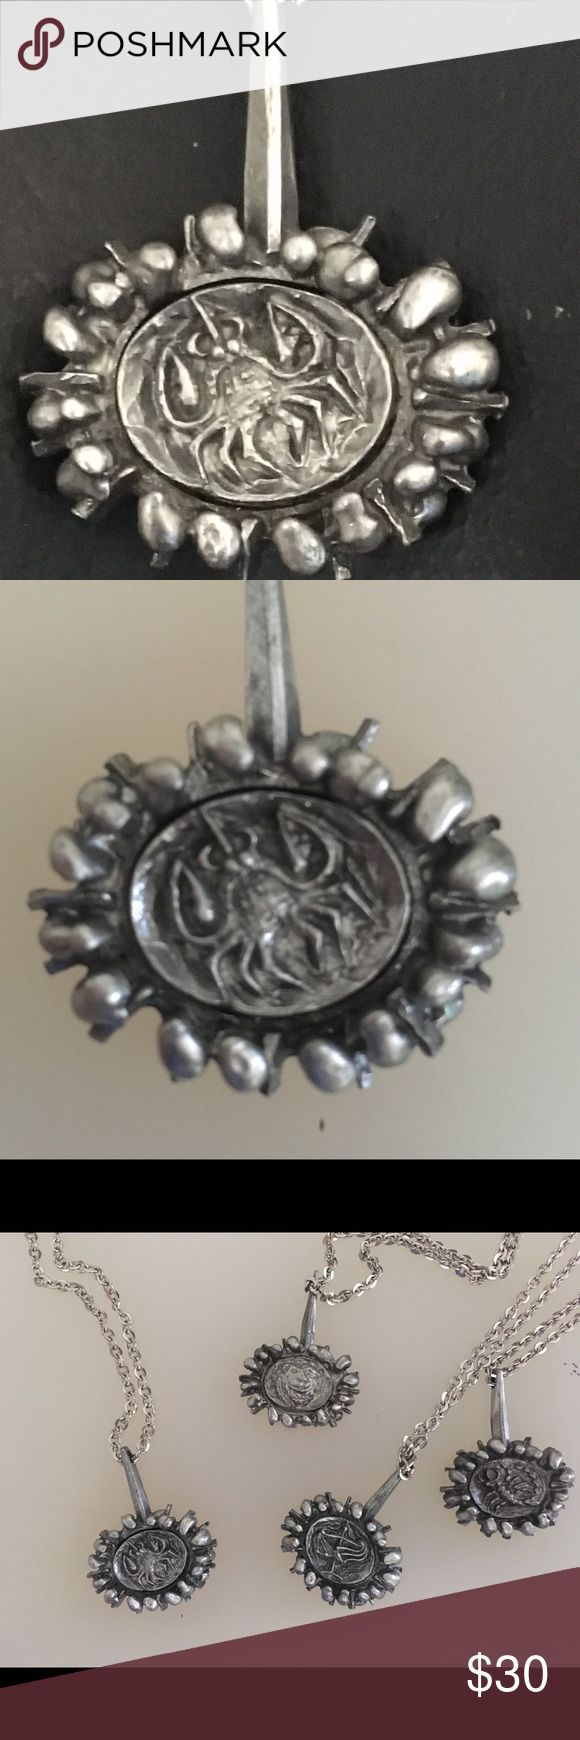 """Vintage Lysgard Danish Pewter """"Cancer"""" Necklace Symbolizing astrological sign of Cancer, this beautiful pewter handmade necklace is from vintage designer Lysgard Vintage Jewelry Necklaces"""